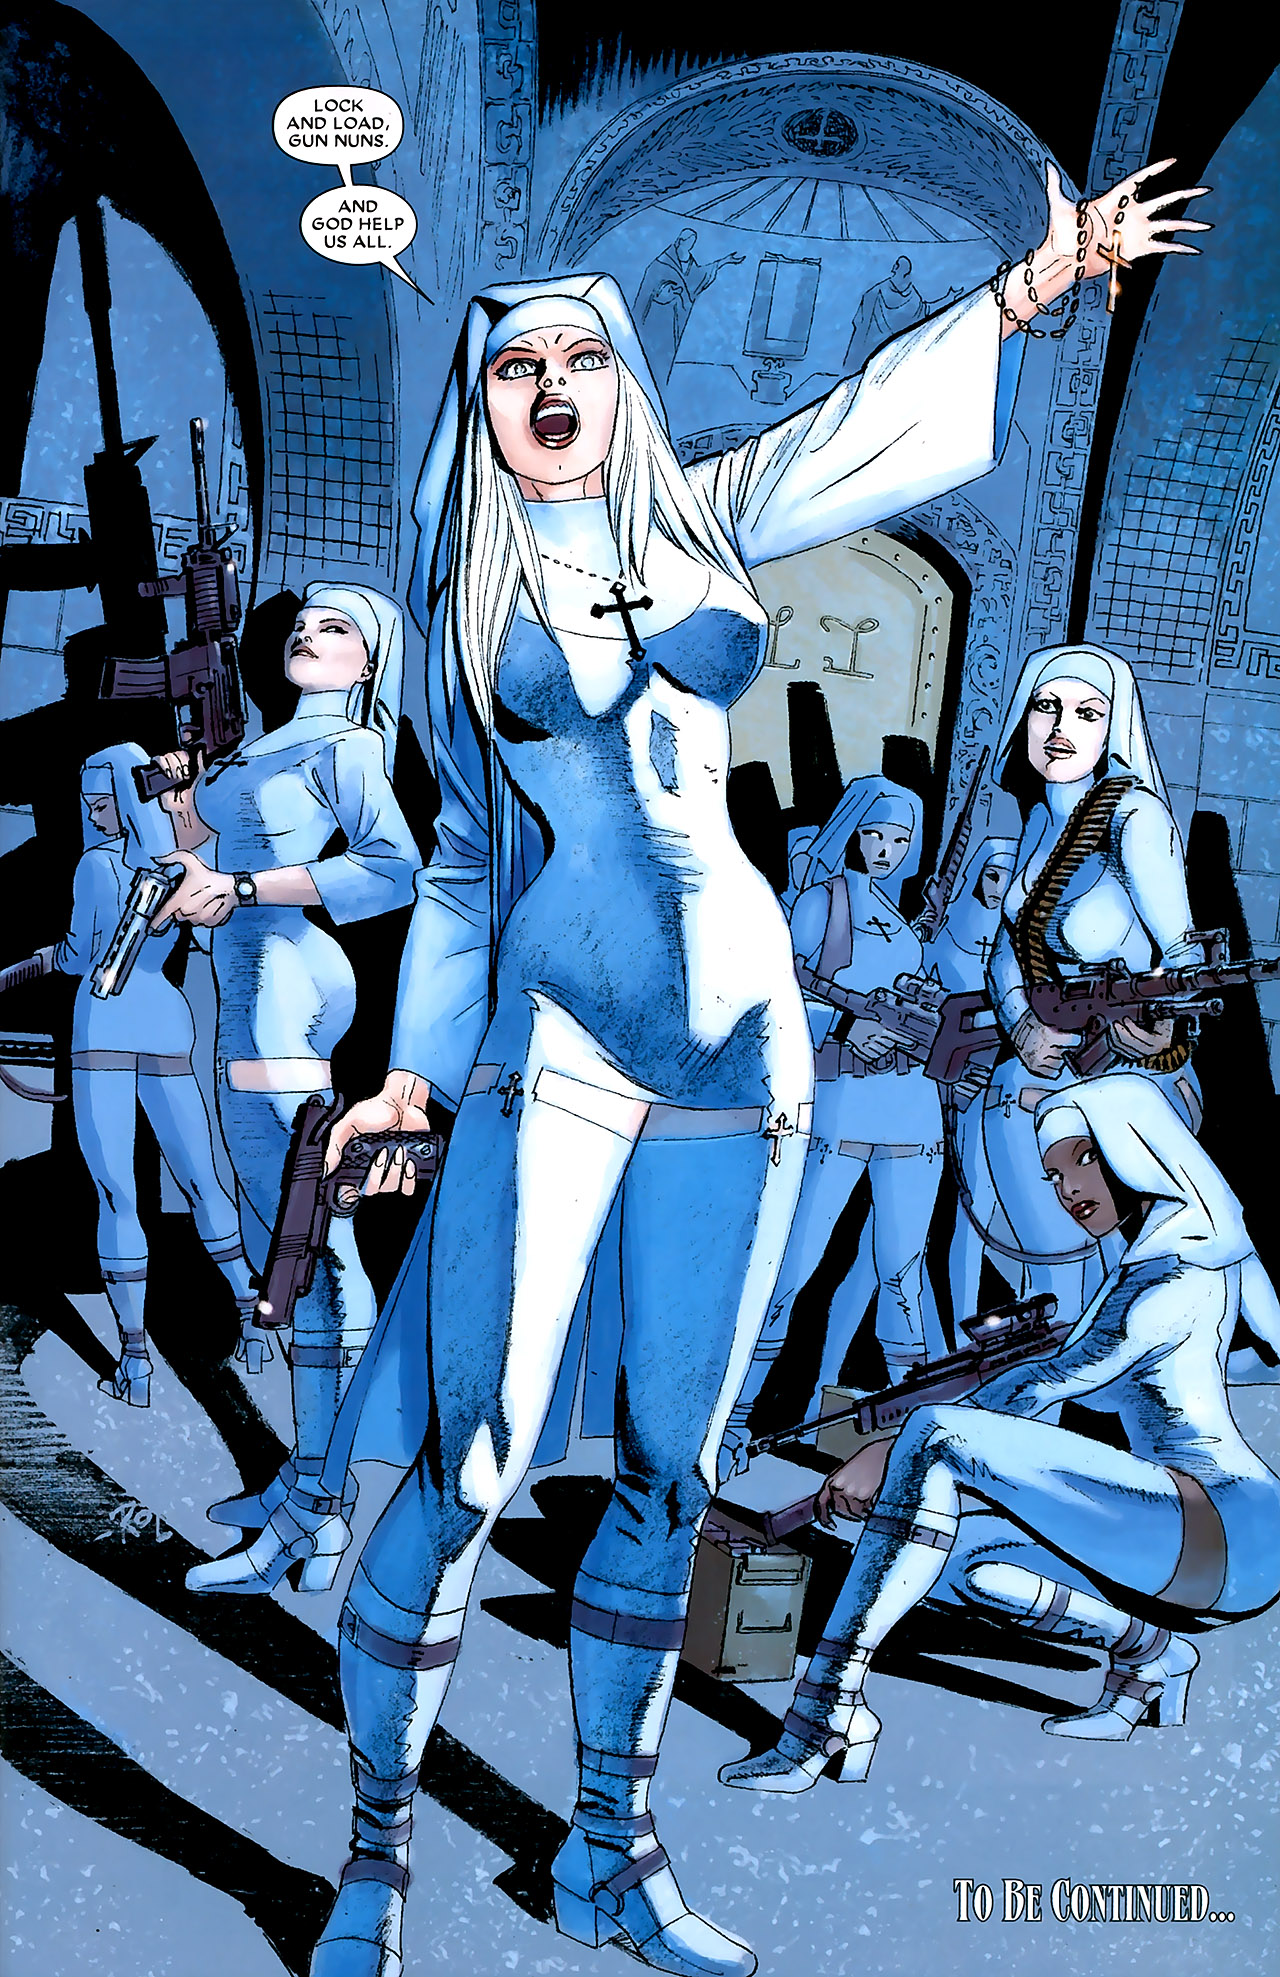 Gun Nuns (Earth-616)/Gallery